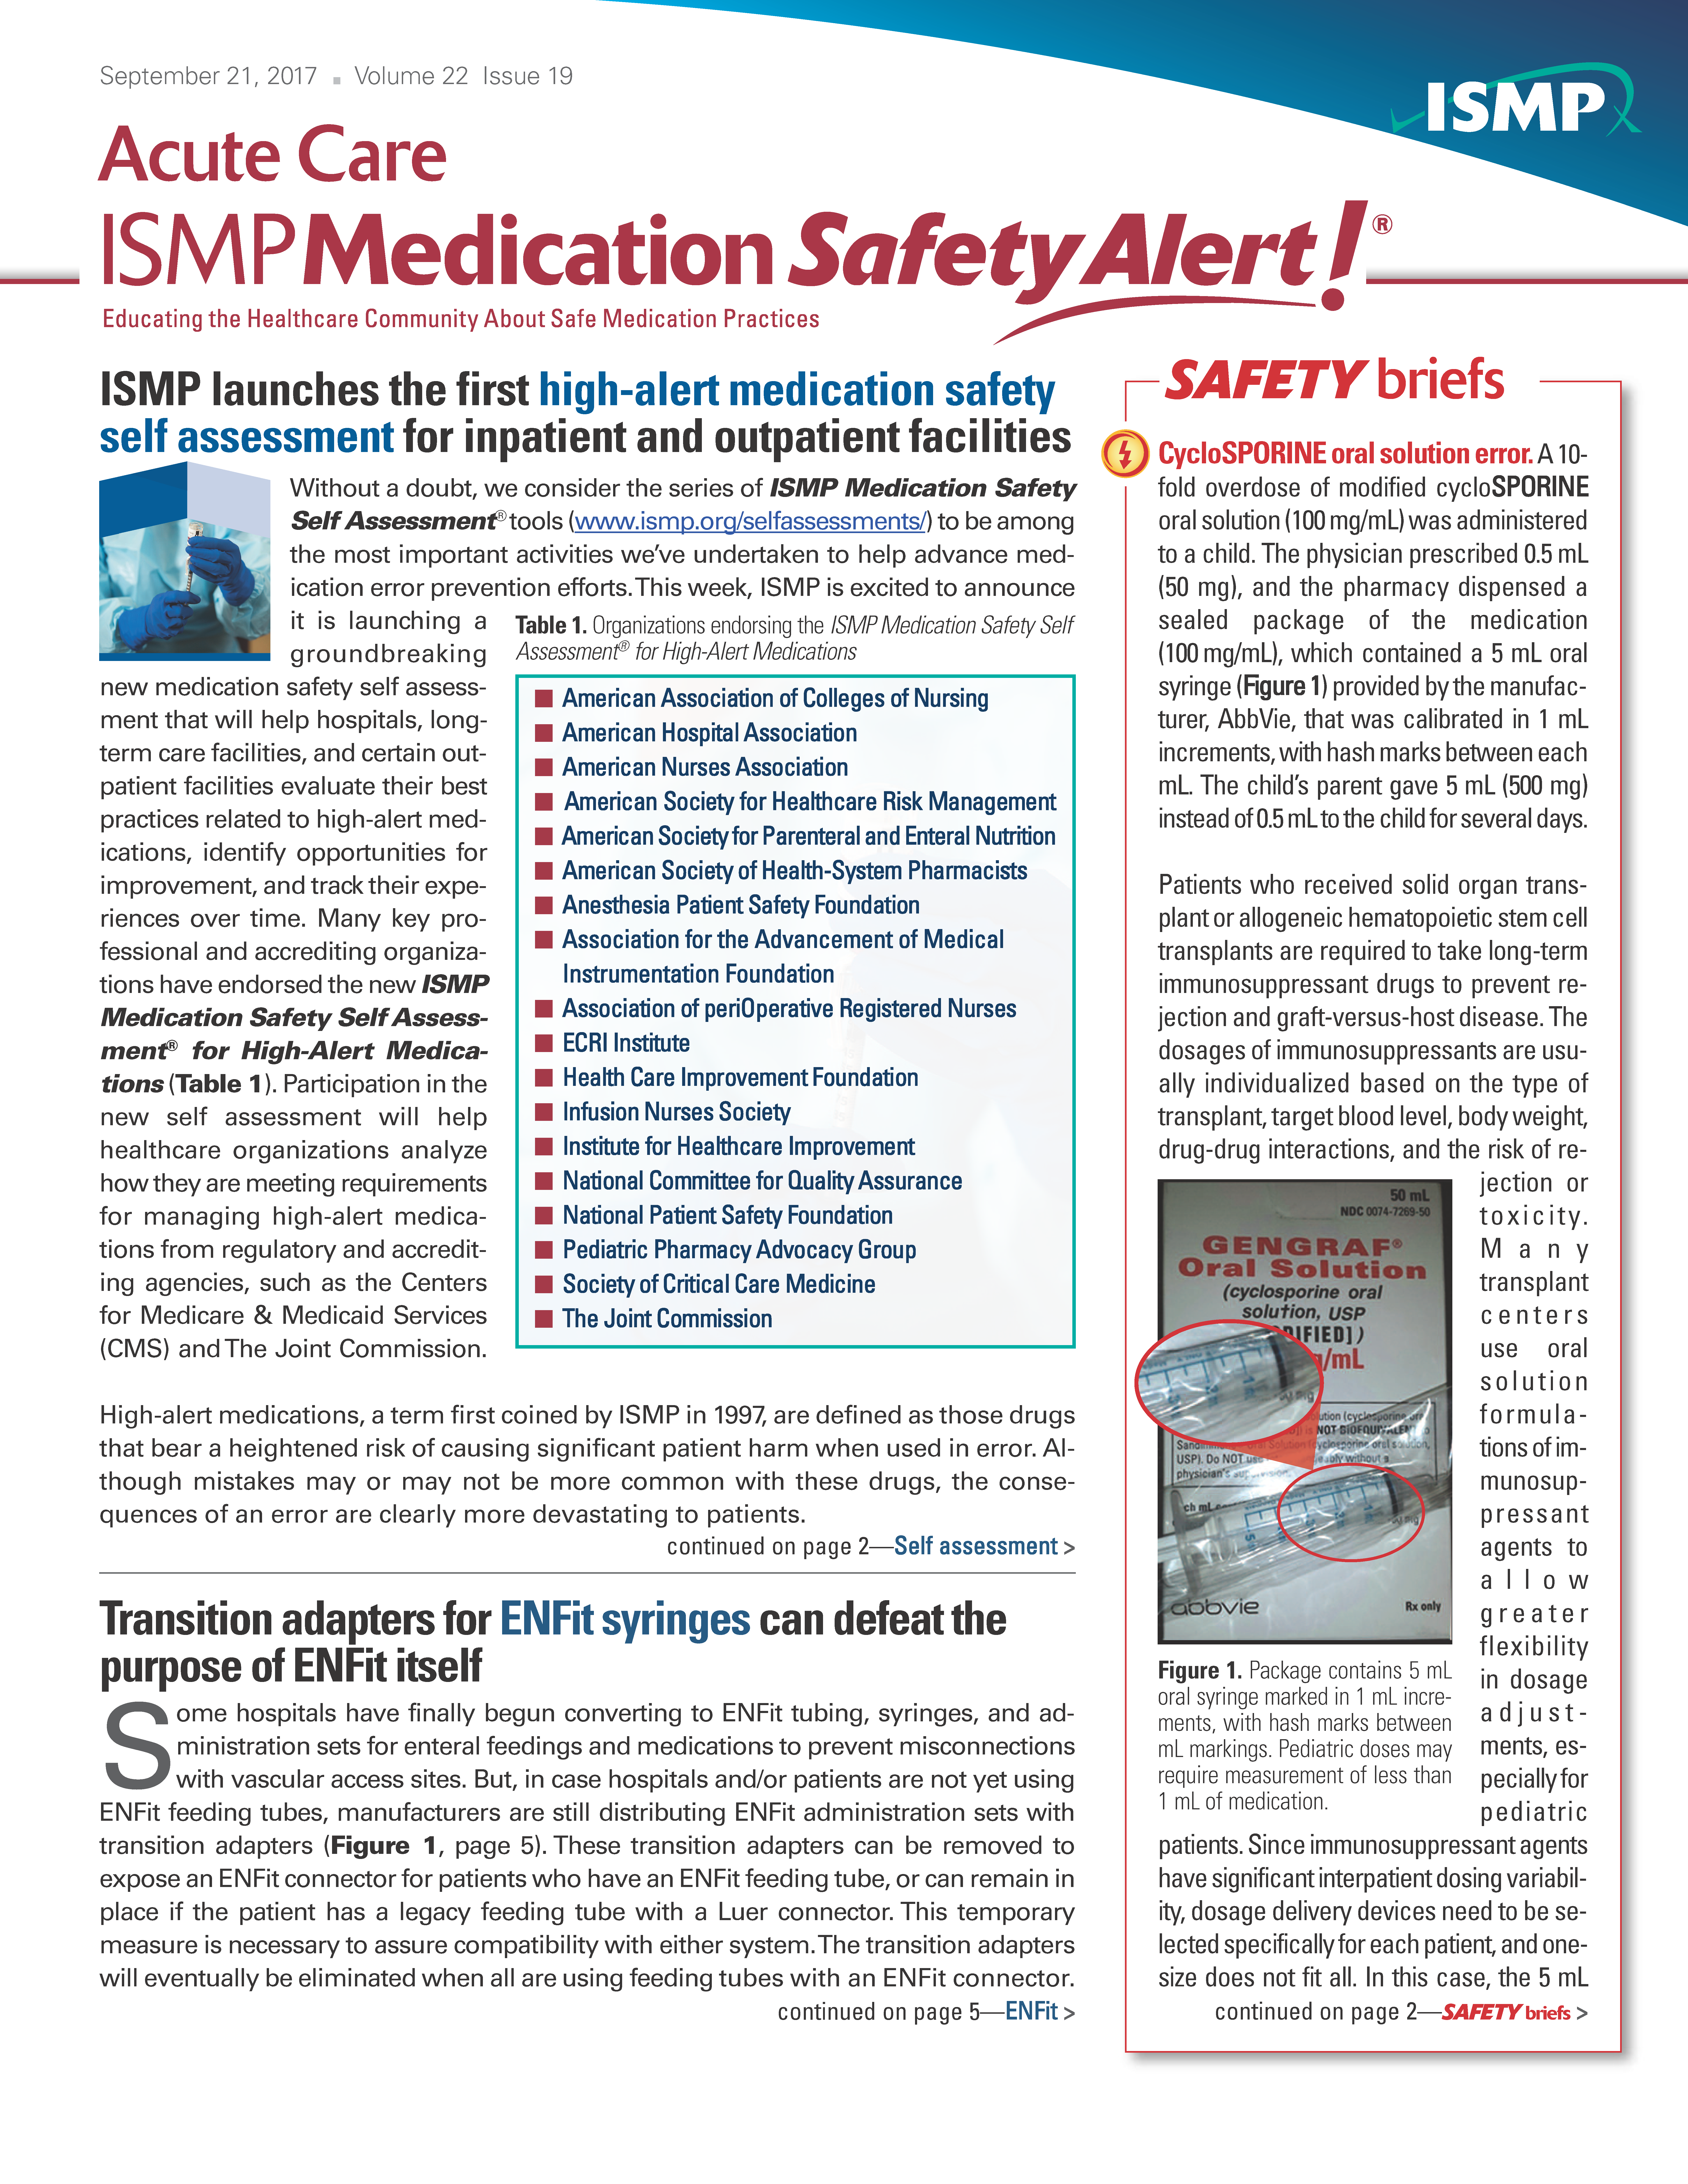 ISMP Issues Medical Safety Alert